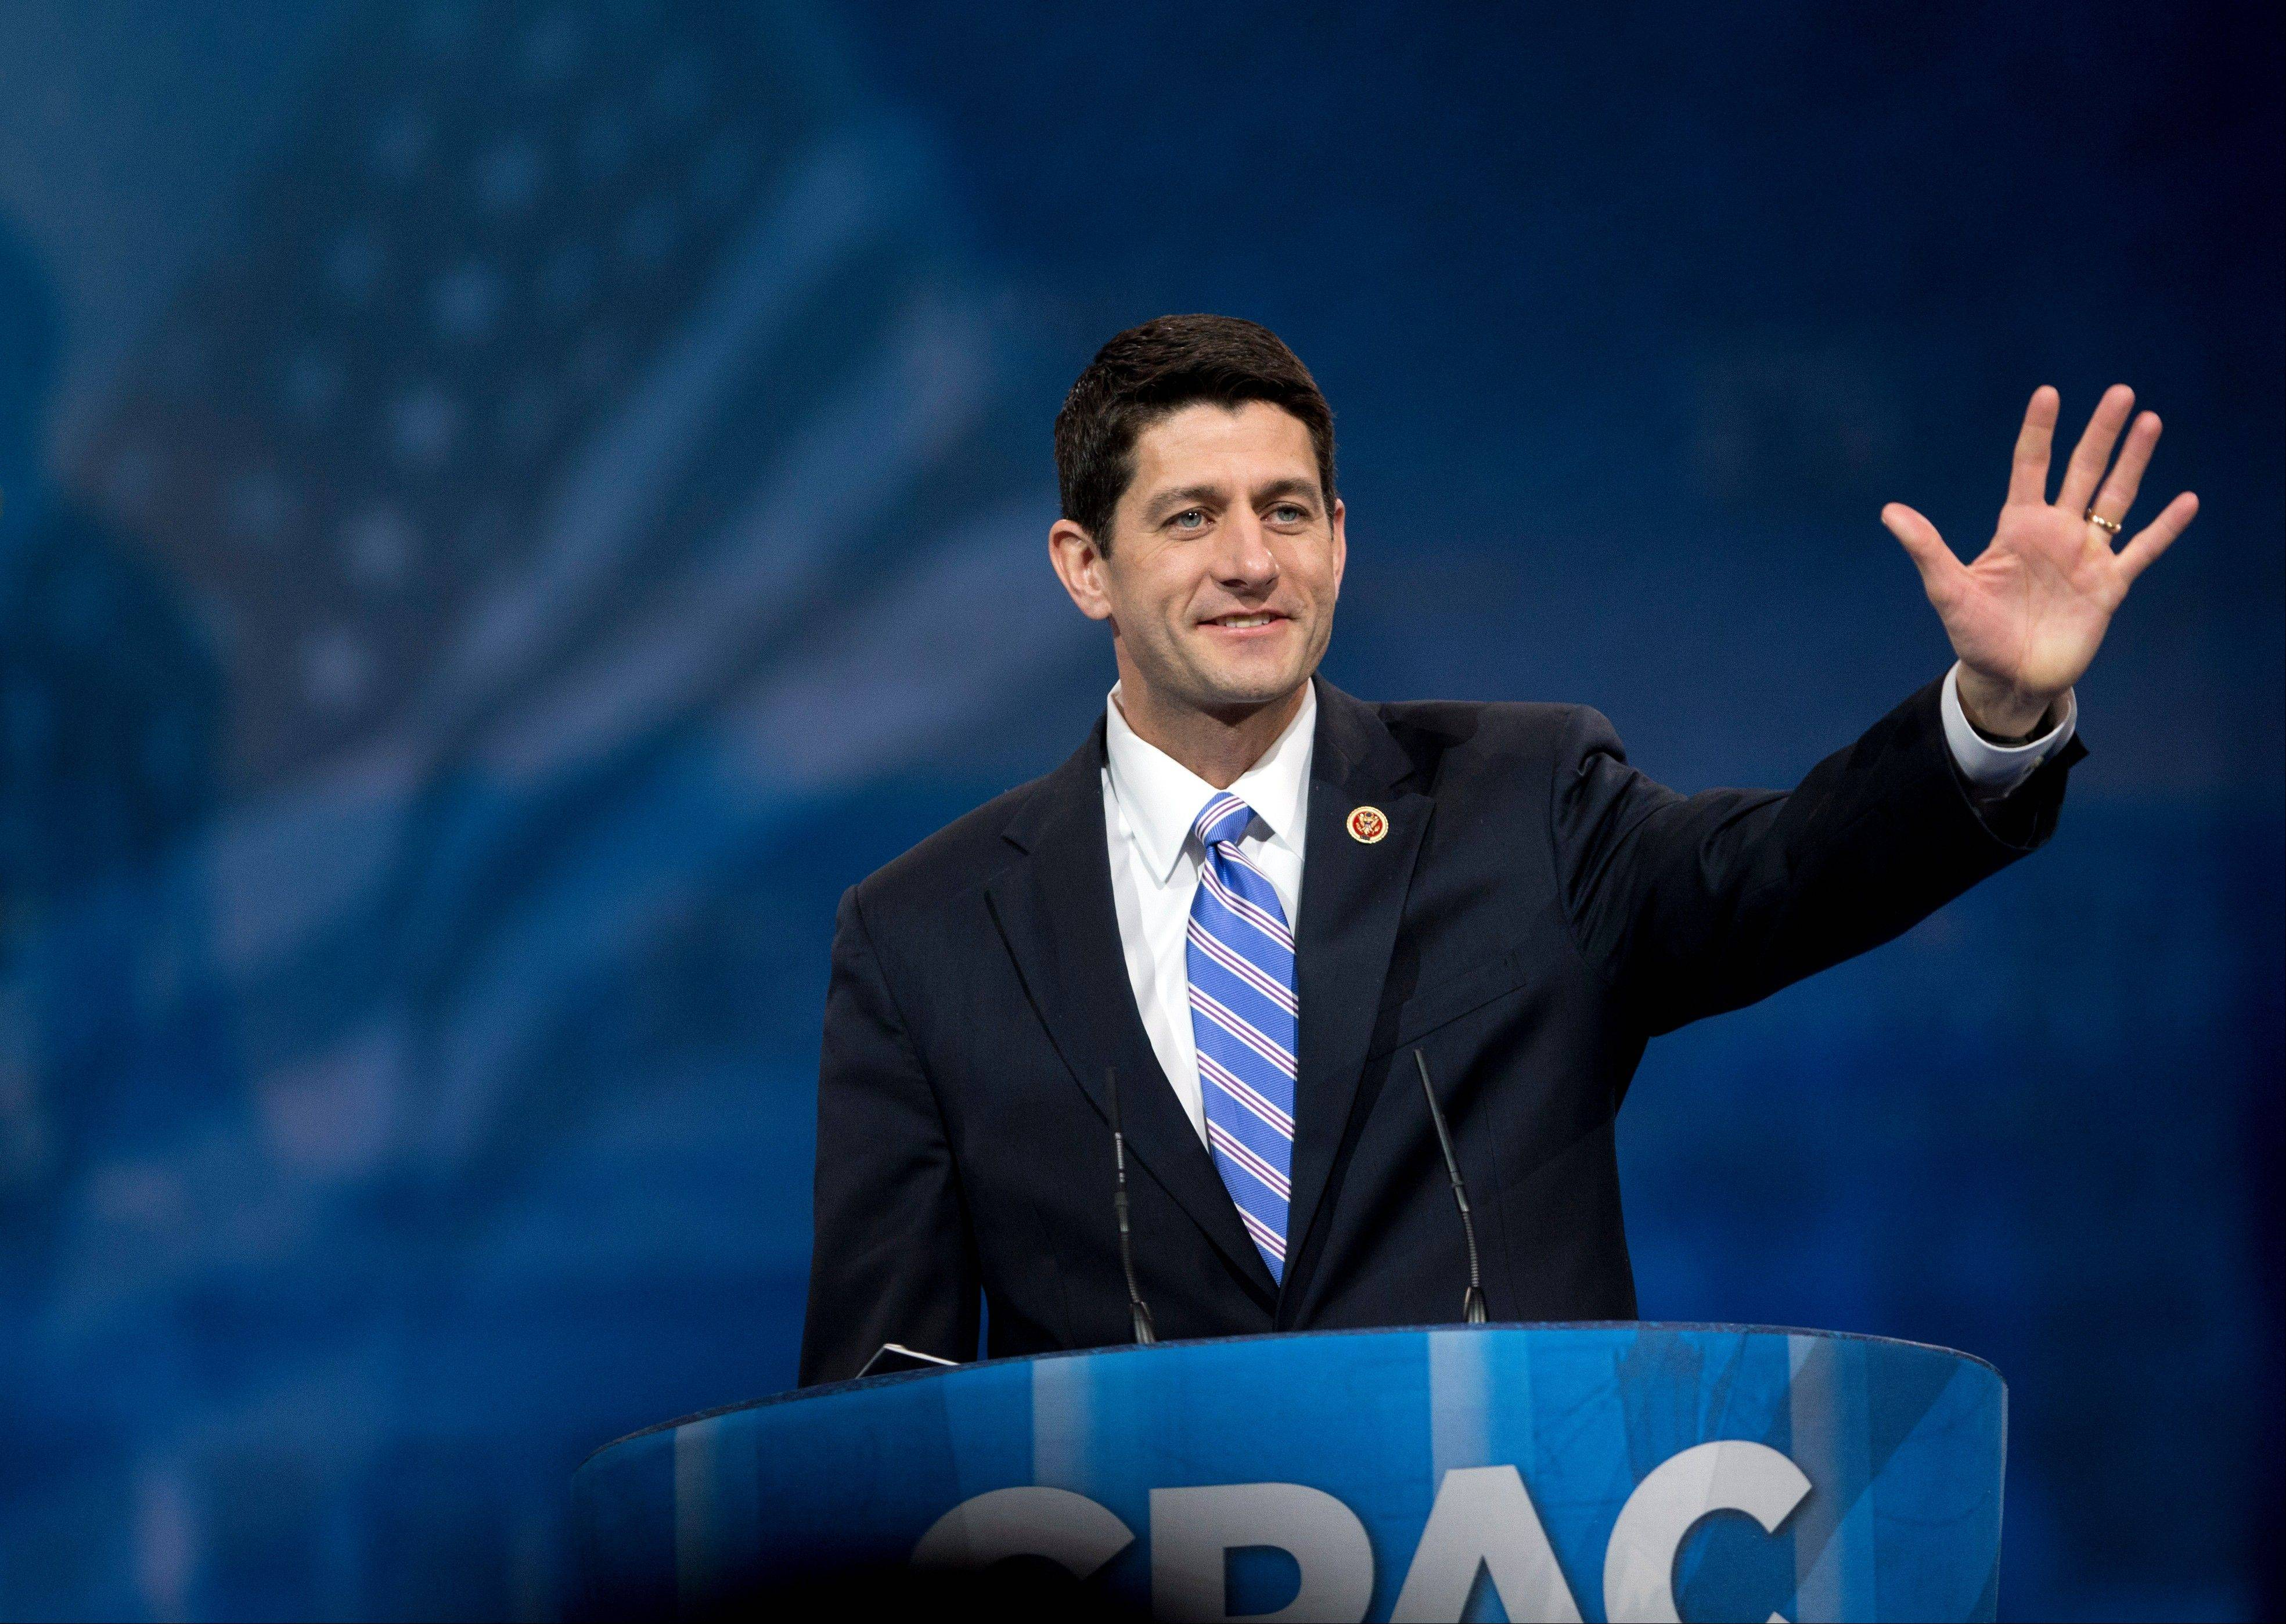 In this March 15, 2013, file photo, House Budget Committee Chairman, Rep. Paul Ryan, a Wisconsin Republican, waves as he arrives before speaking at the 40th annual Conservative Political Action Conference in National Harbor, Md.